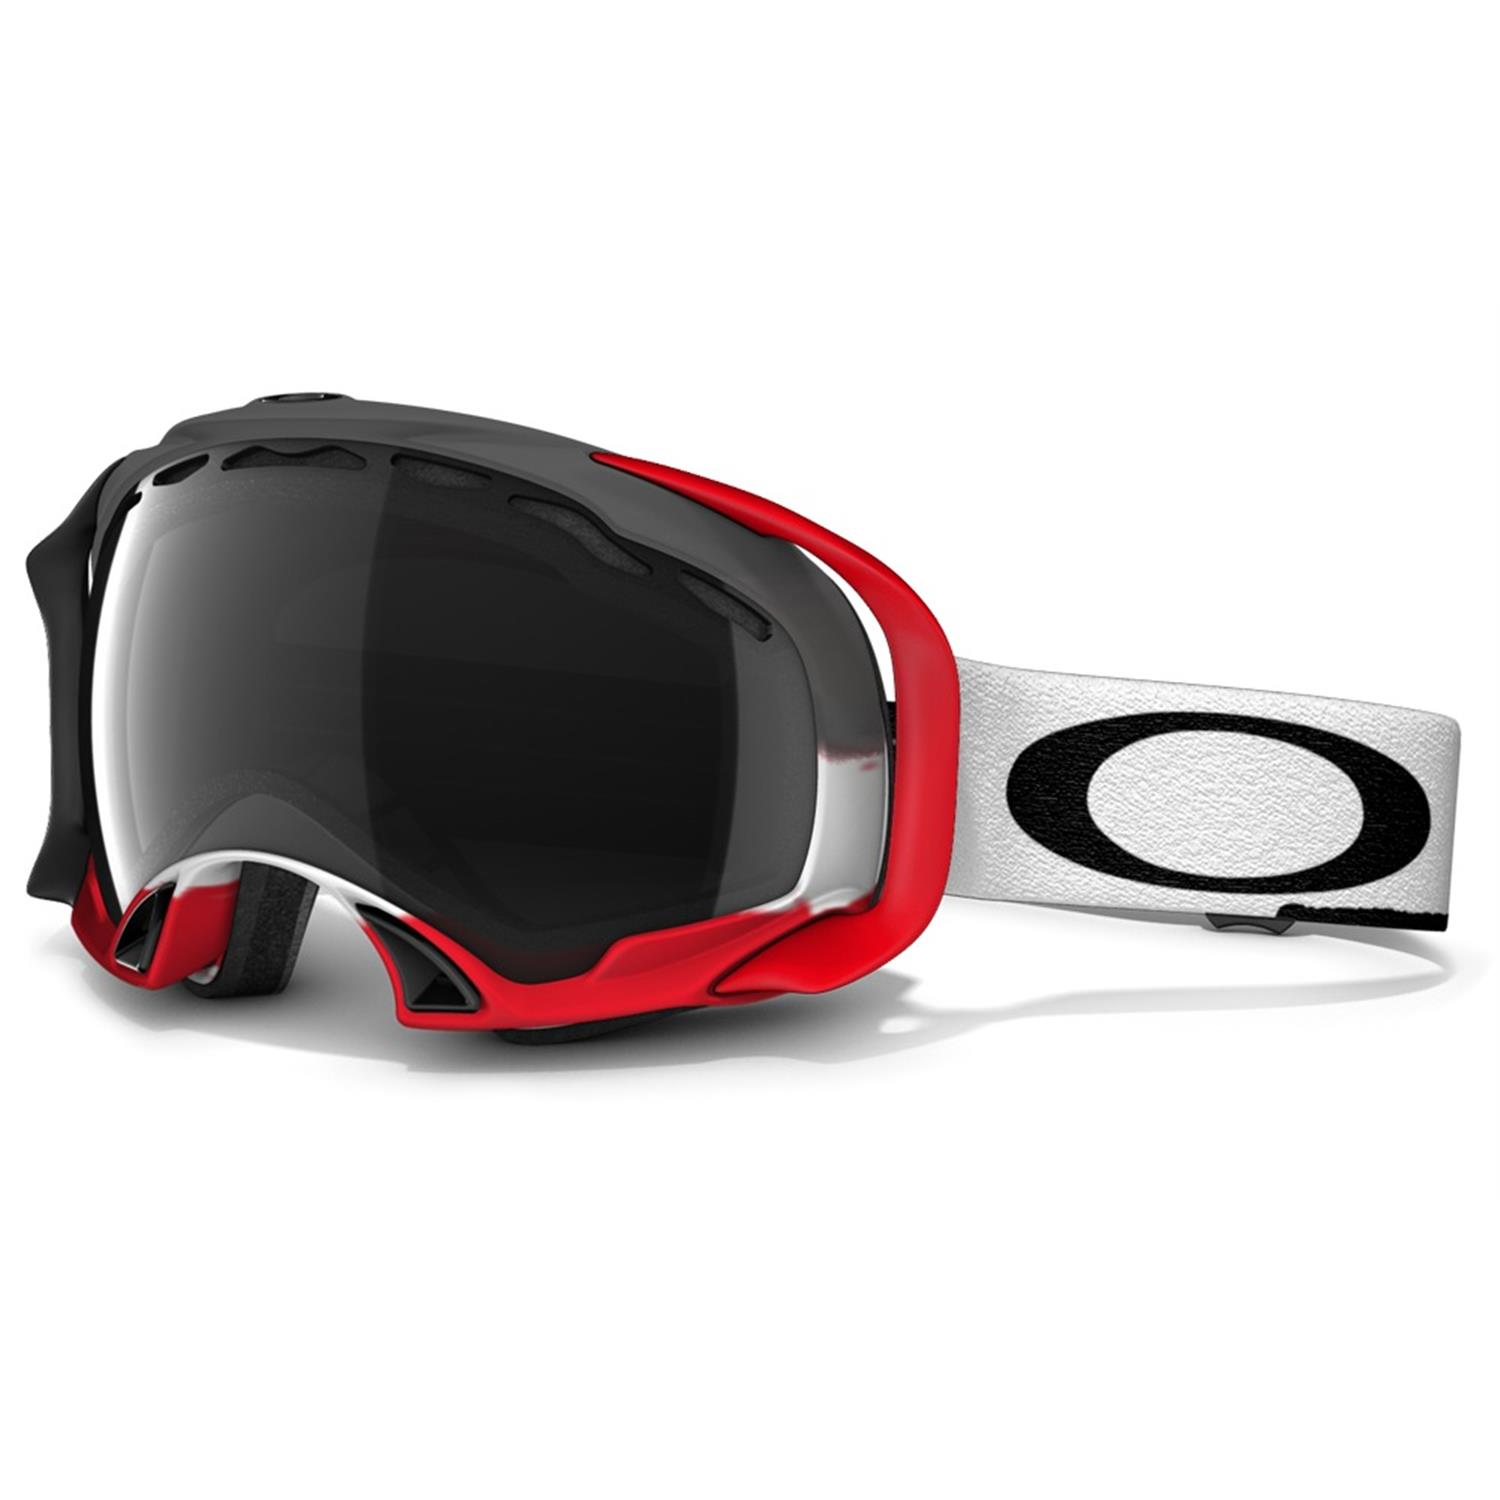 oakley splice goggles  Oakley Splice Goggle Review - atlantabeadgallery